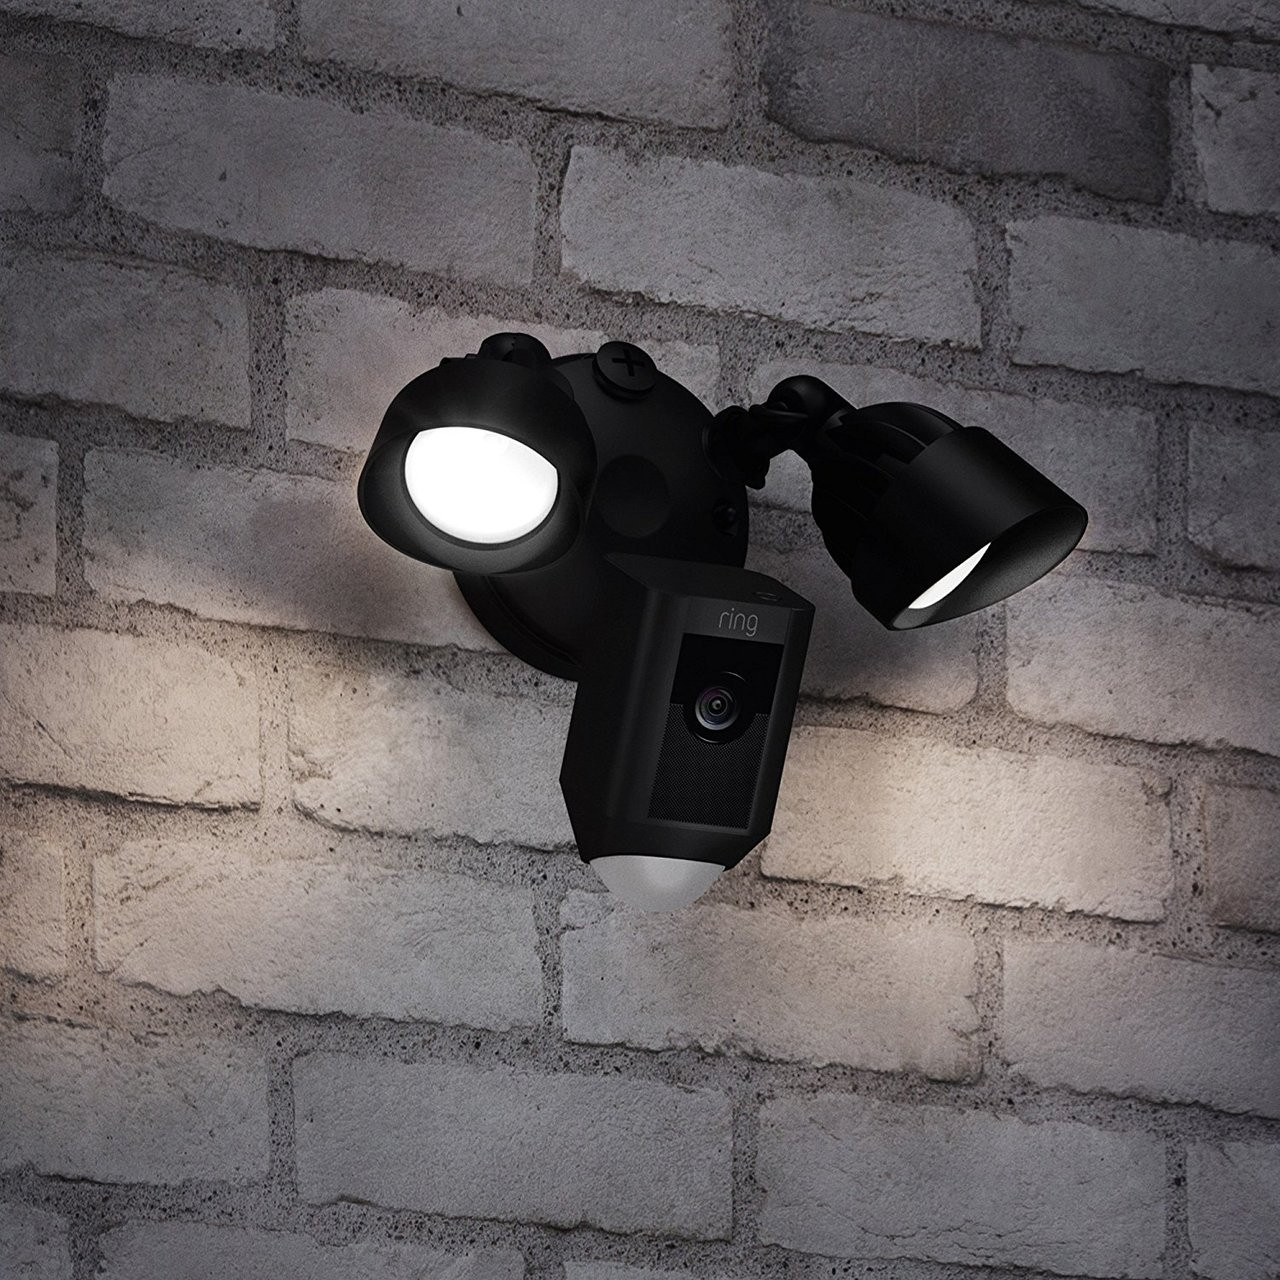 Ring Floodlight Cams are easy to install